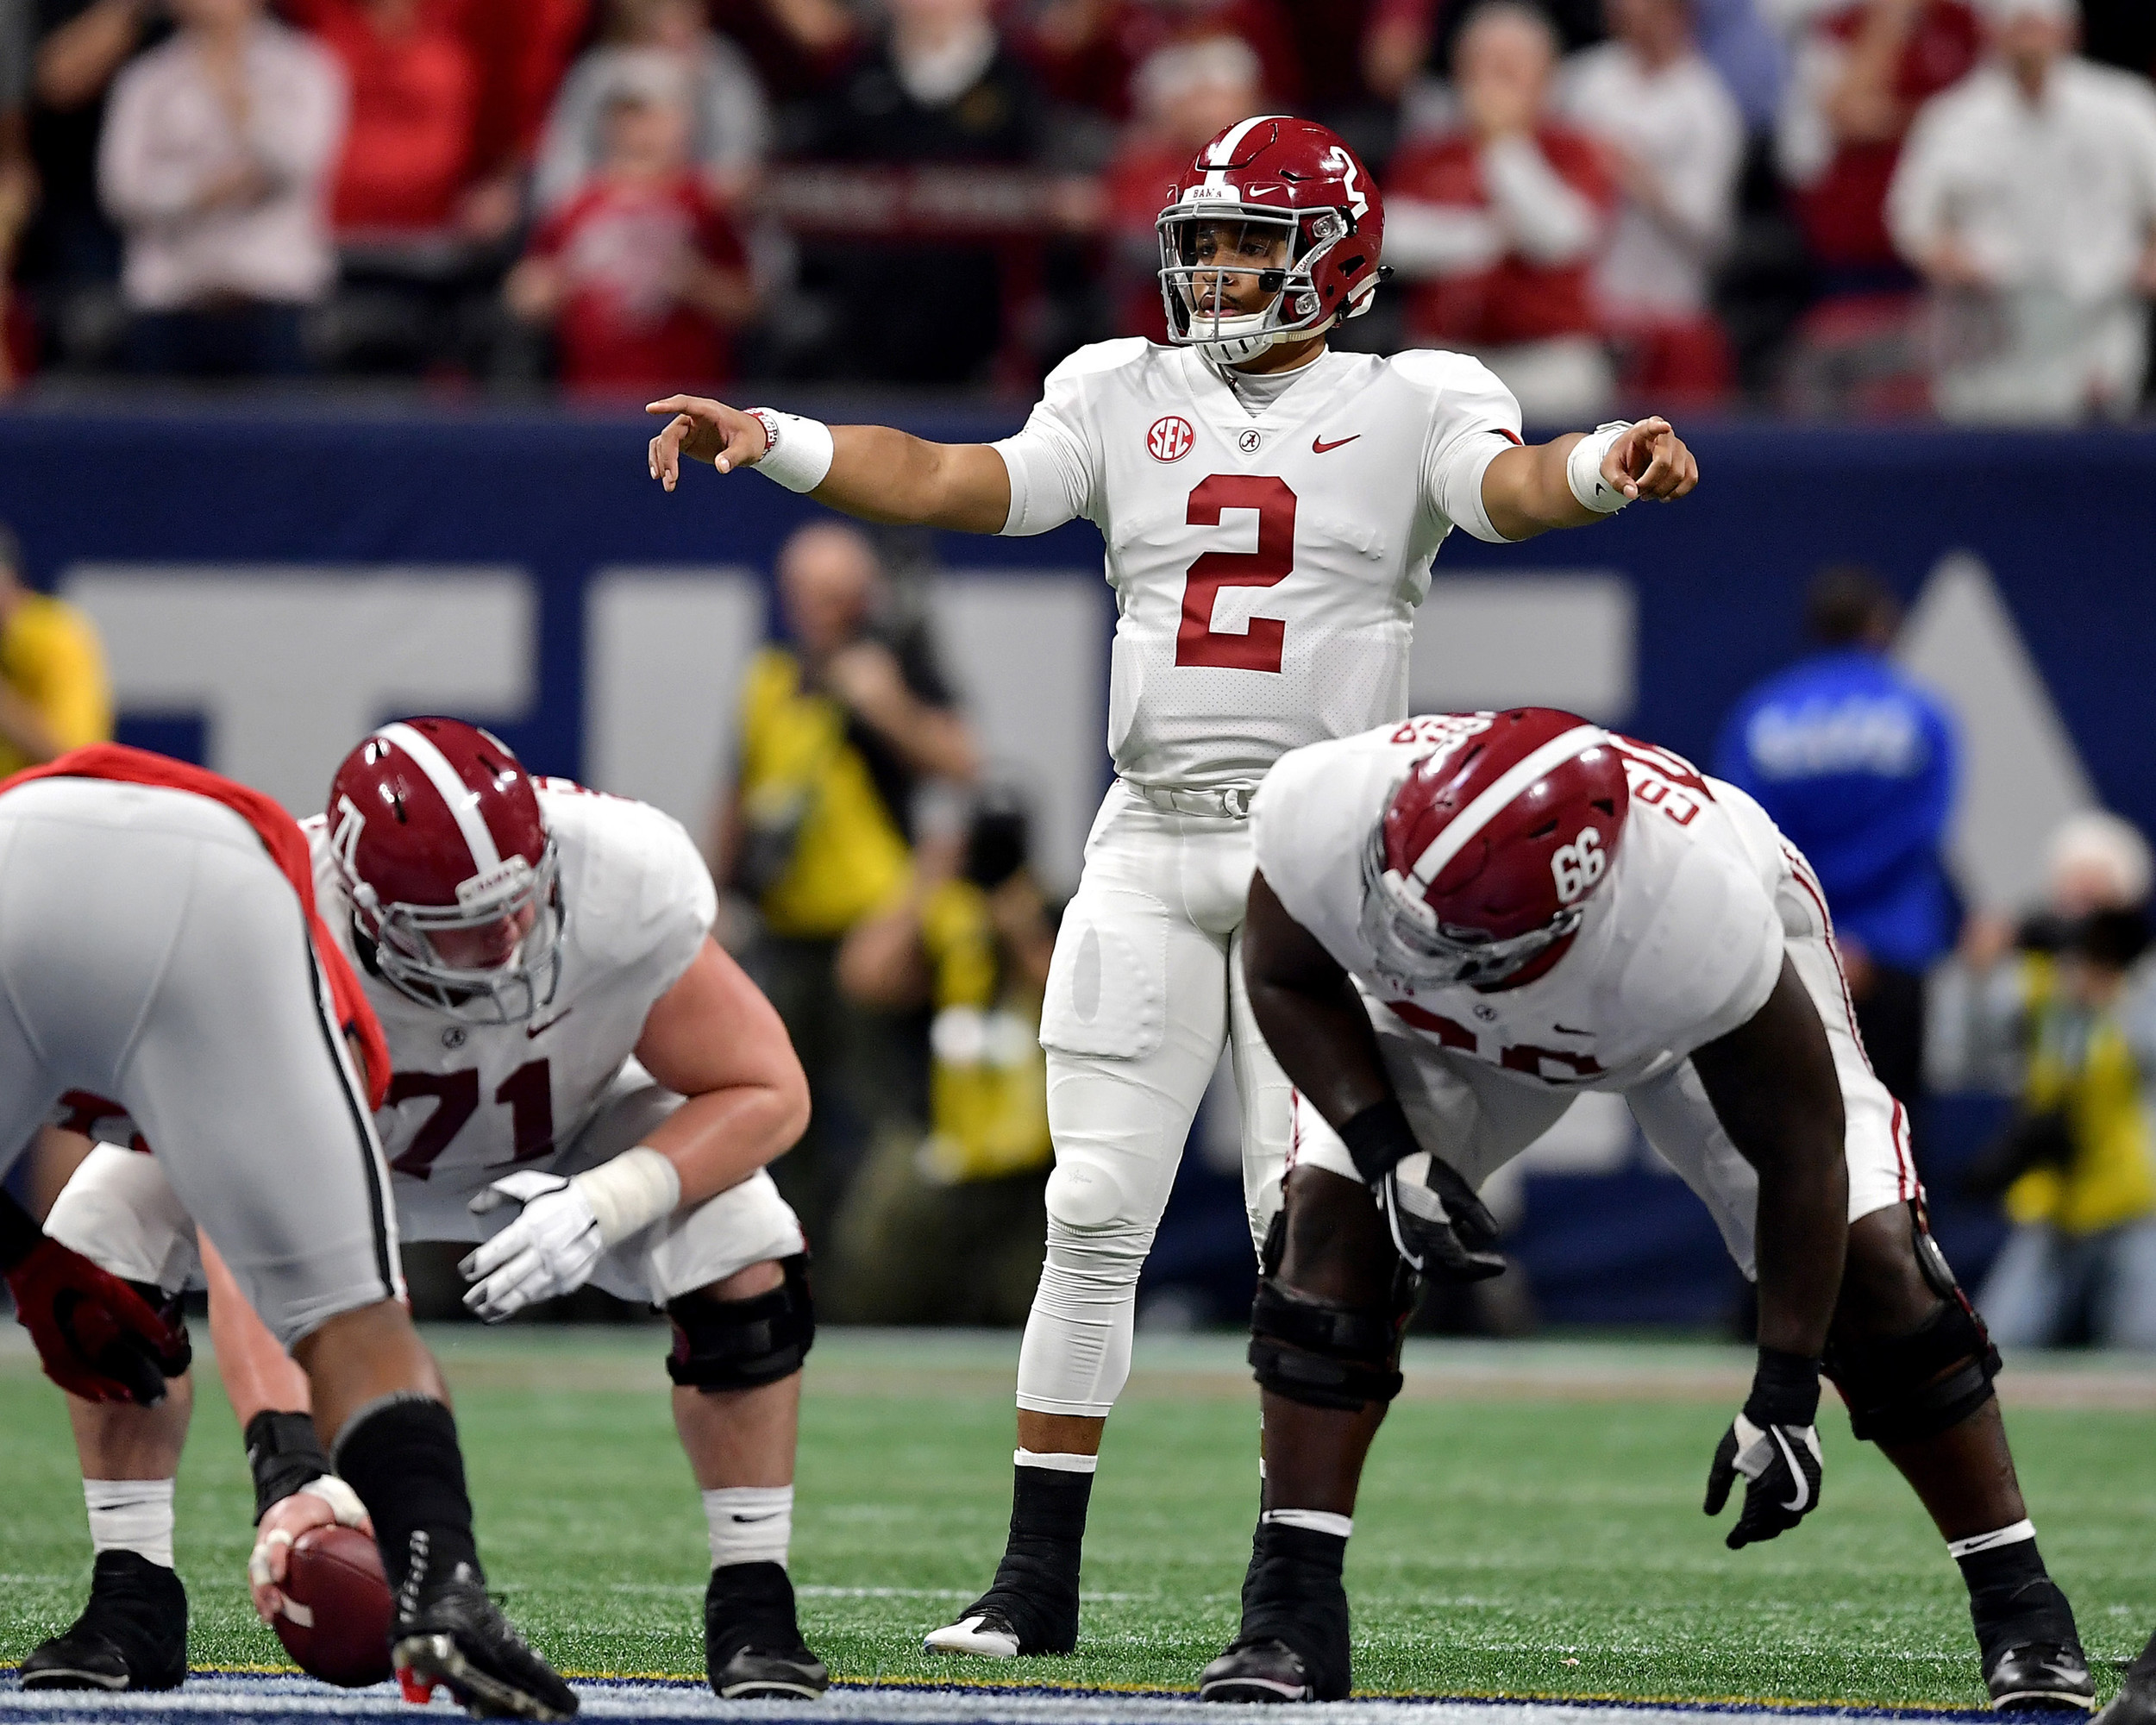 Alabama Crimson Tide quarterback Jalen Hurts (2) commands his offensive line late in the fourth quarter of the  2018 SEC Championship football game against the Georgia Bulldogs at Mercedes-Benz Stadium in Atlanta, Ga., on Dec. 1, 2018. Alabama wins 35-28. (Photo by Lee Walls)